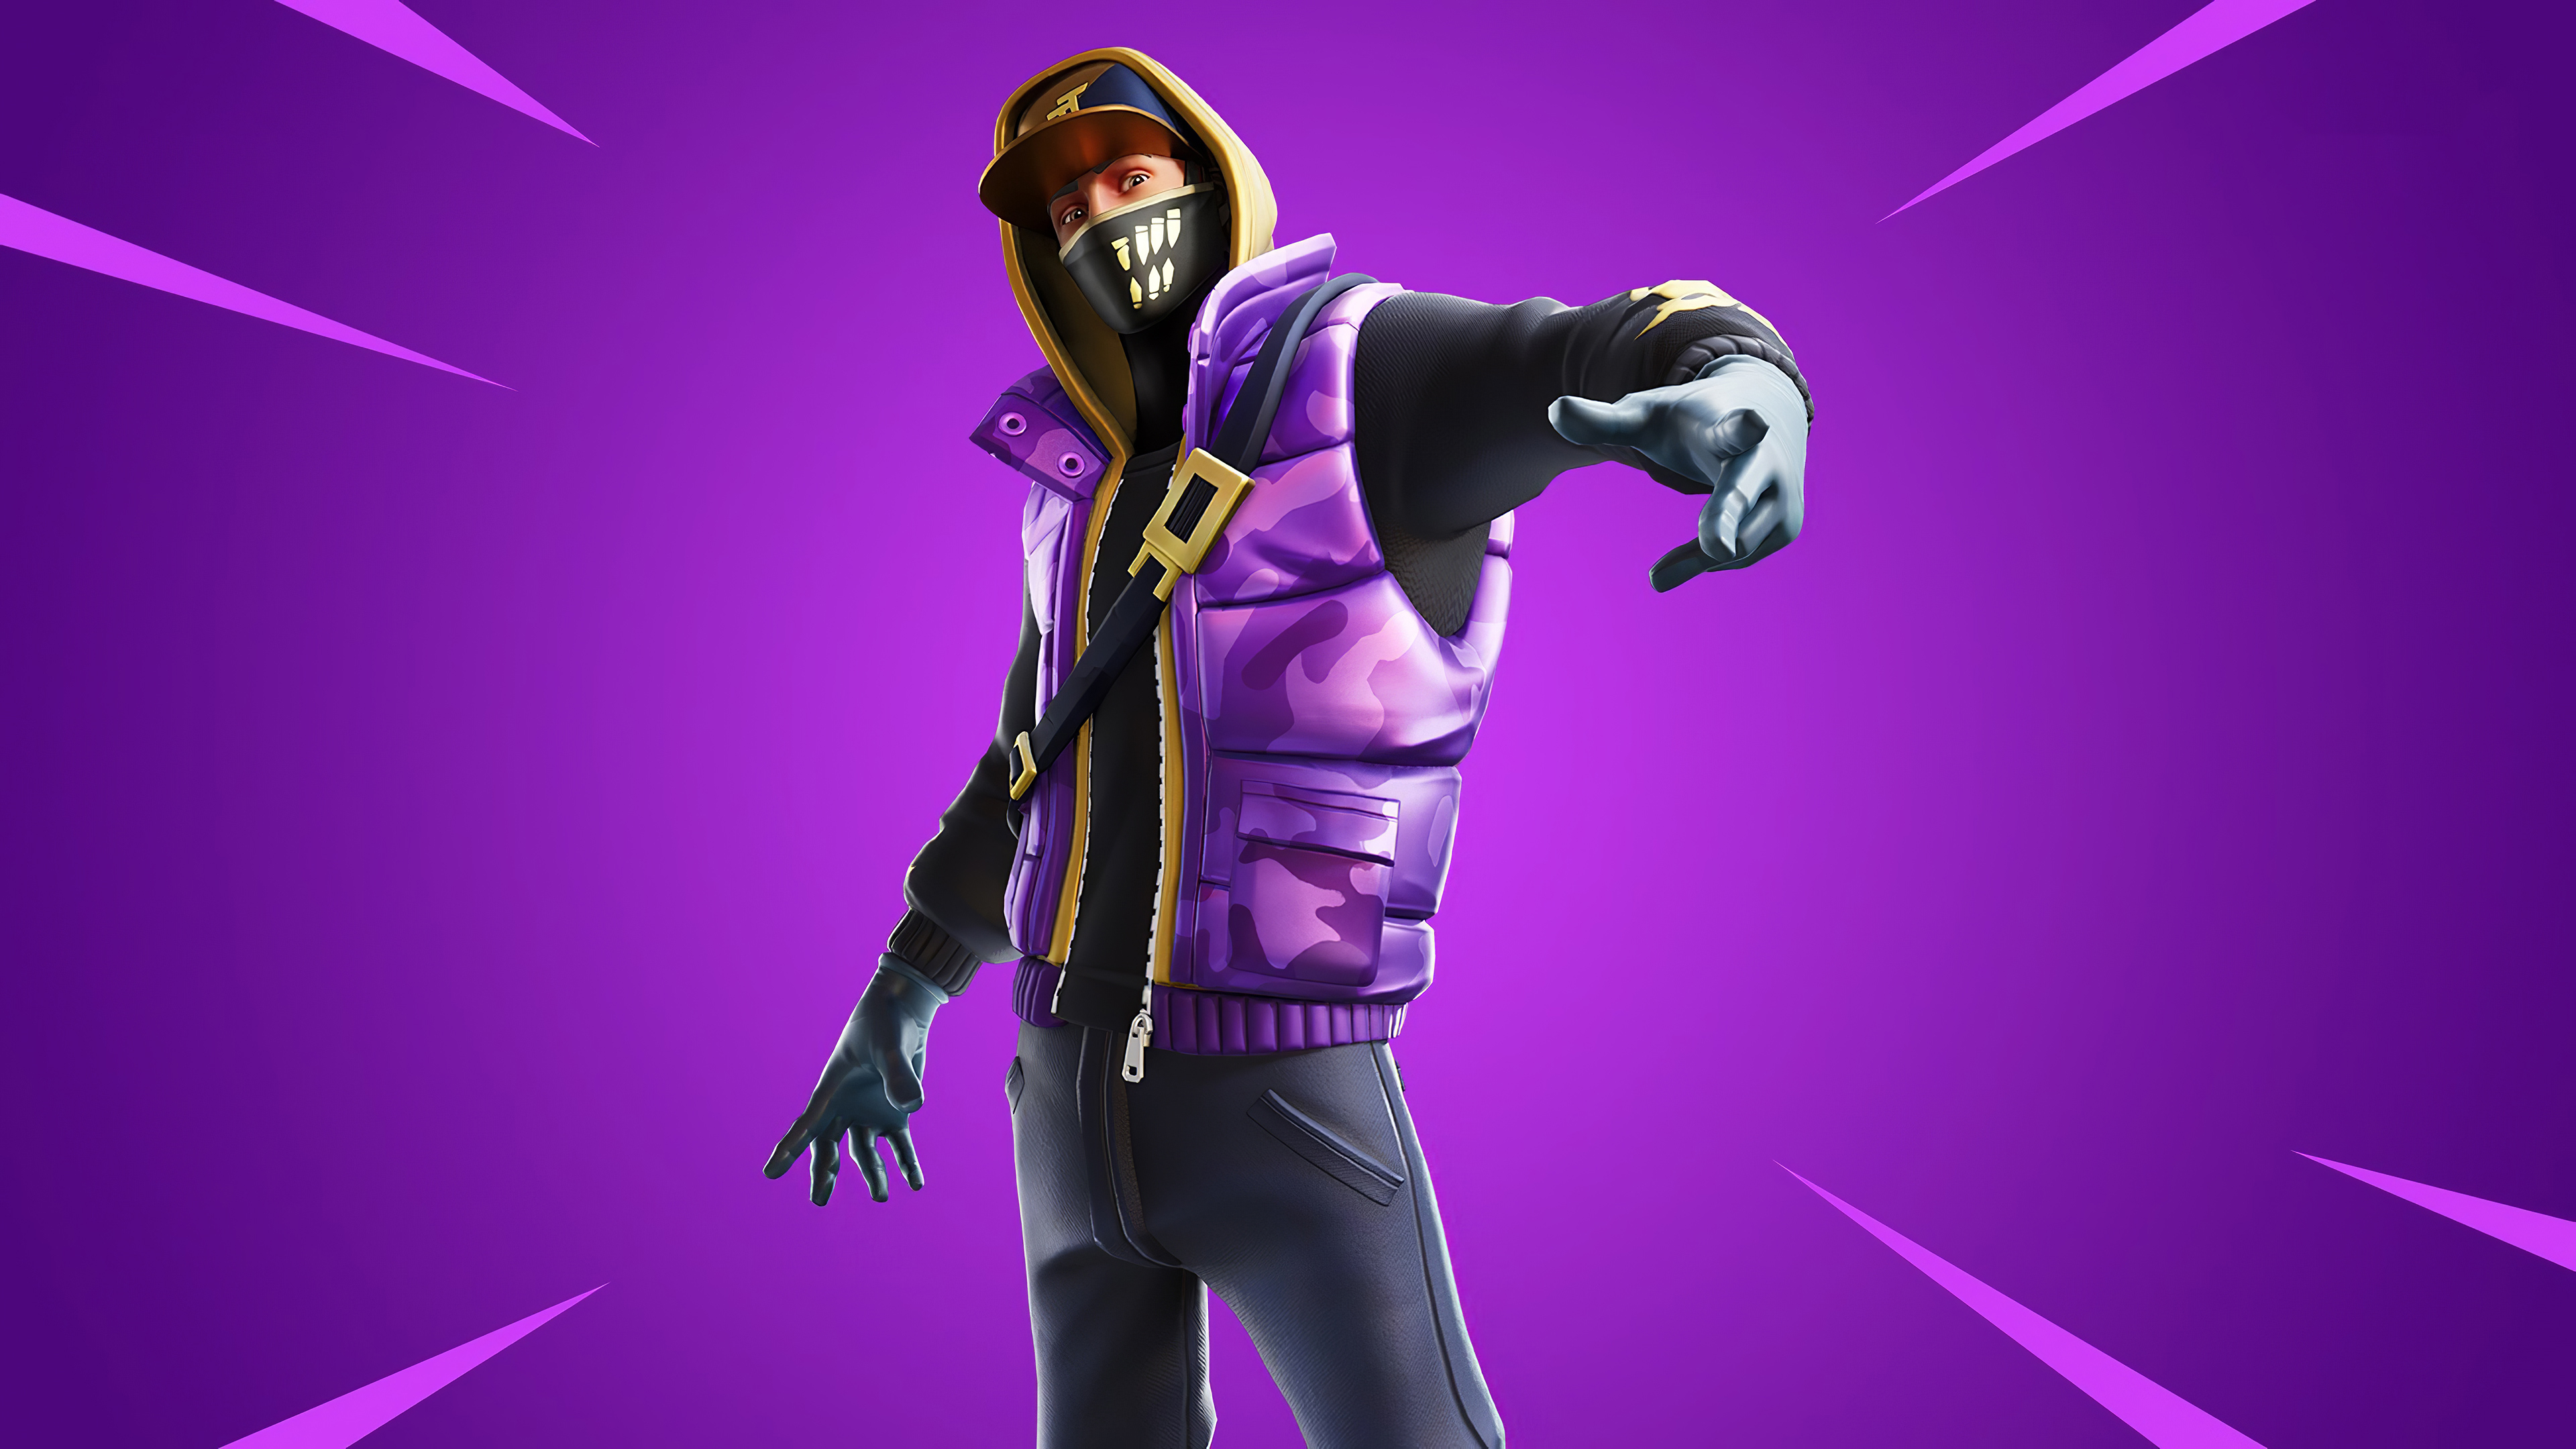 Fortnite 4k Wallpaper Street Striker Outfit Skin Games 488